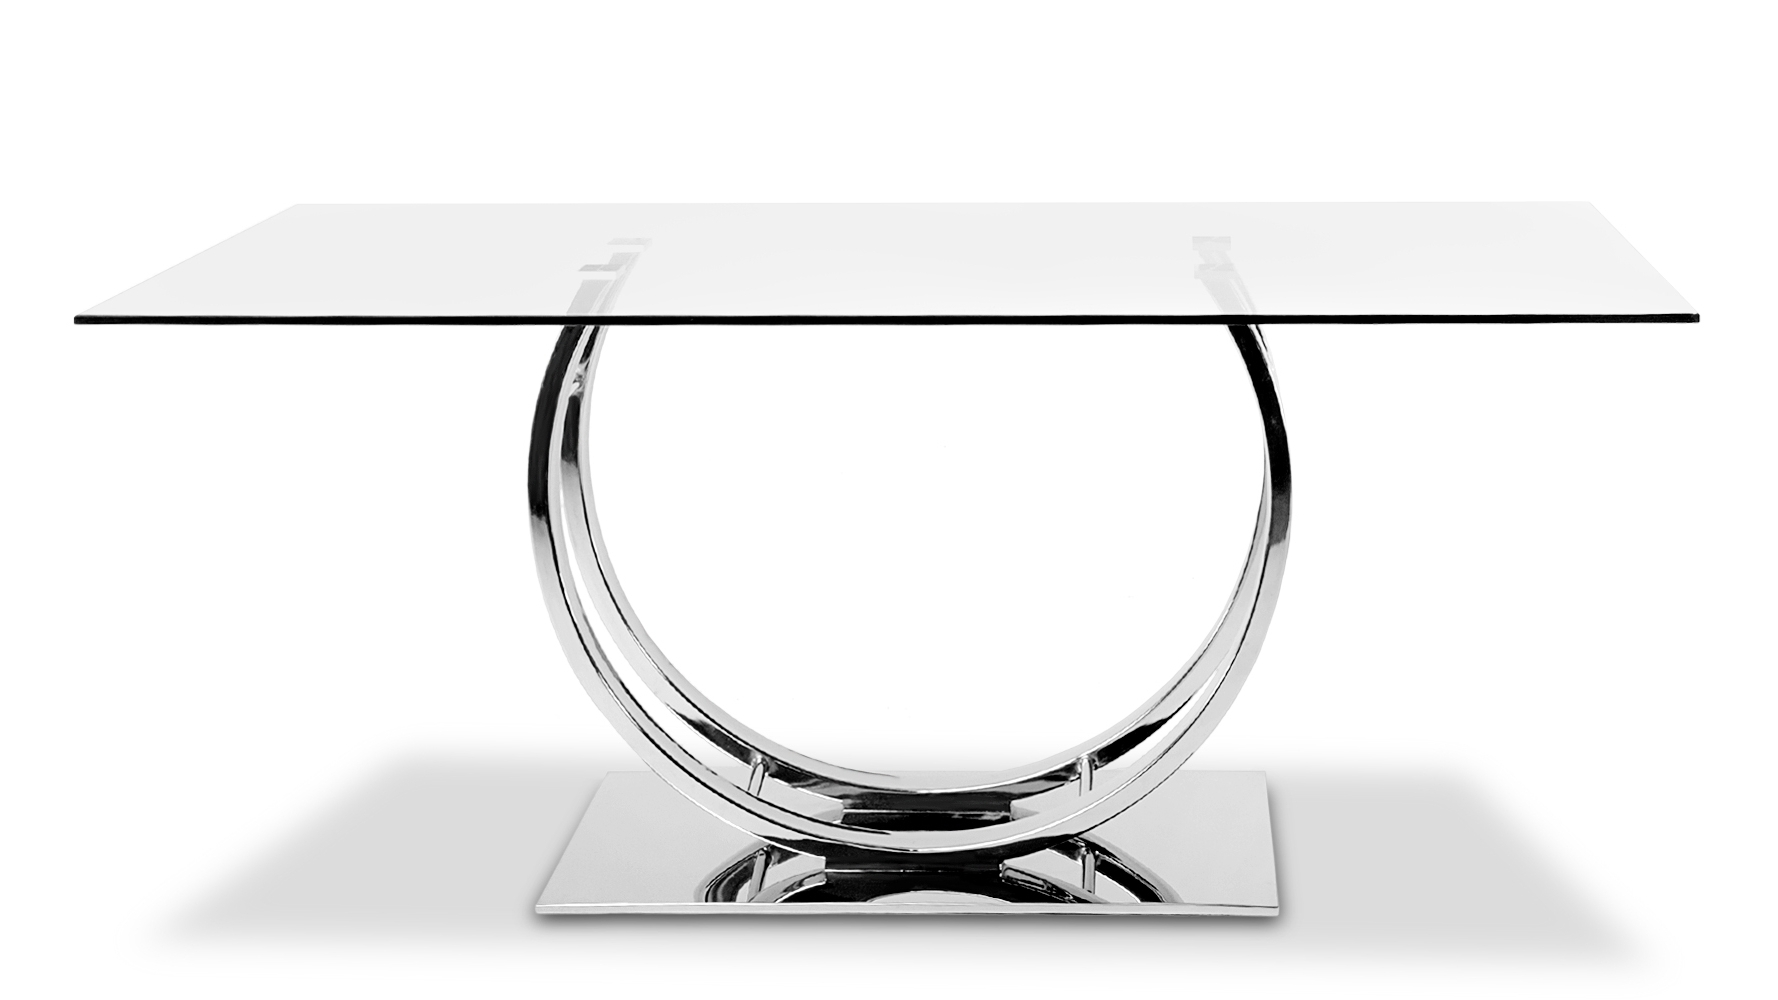 Chrome Dining Tables In Recent Palazzo Glass Modern Dining Table With Polished Chrome Base (View 12 of 25)